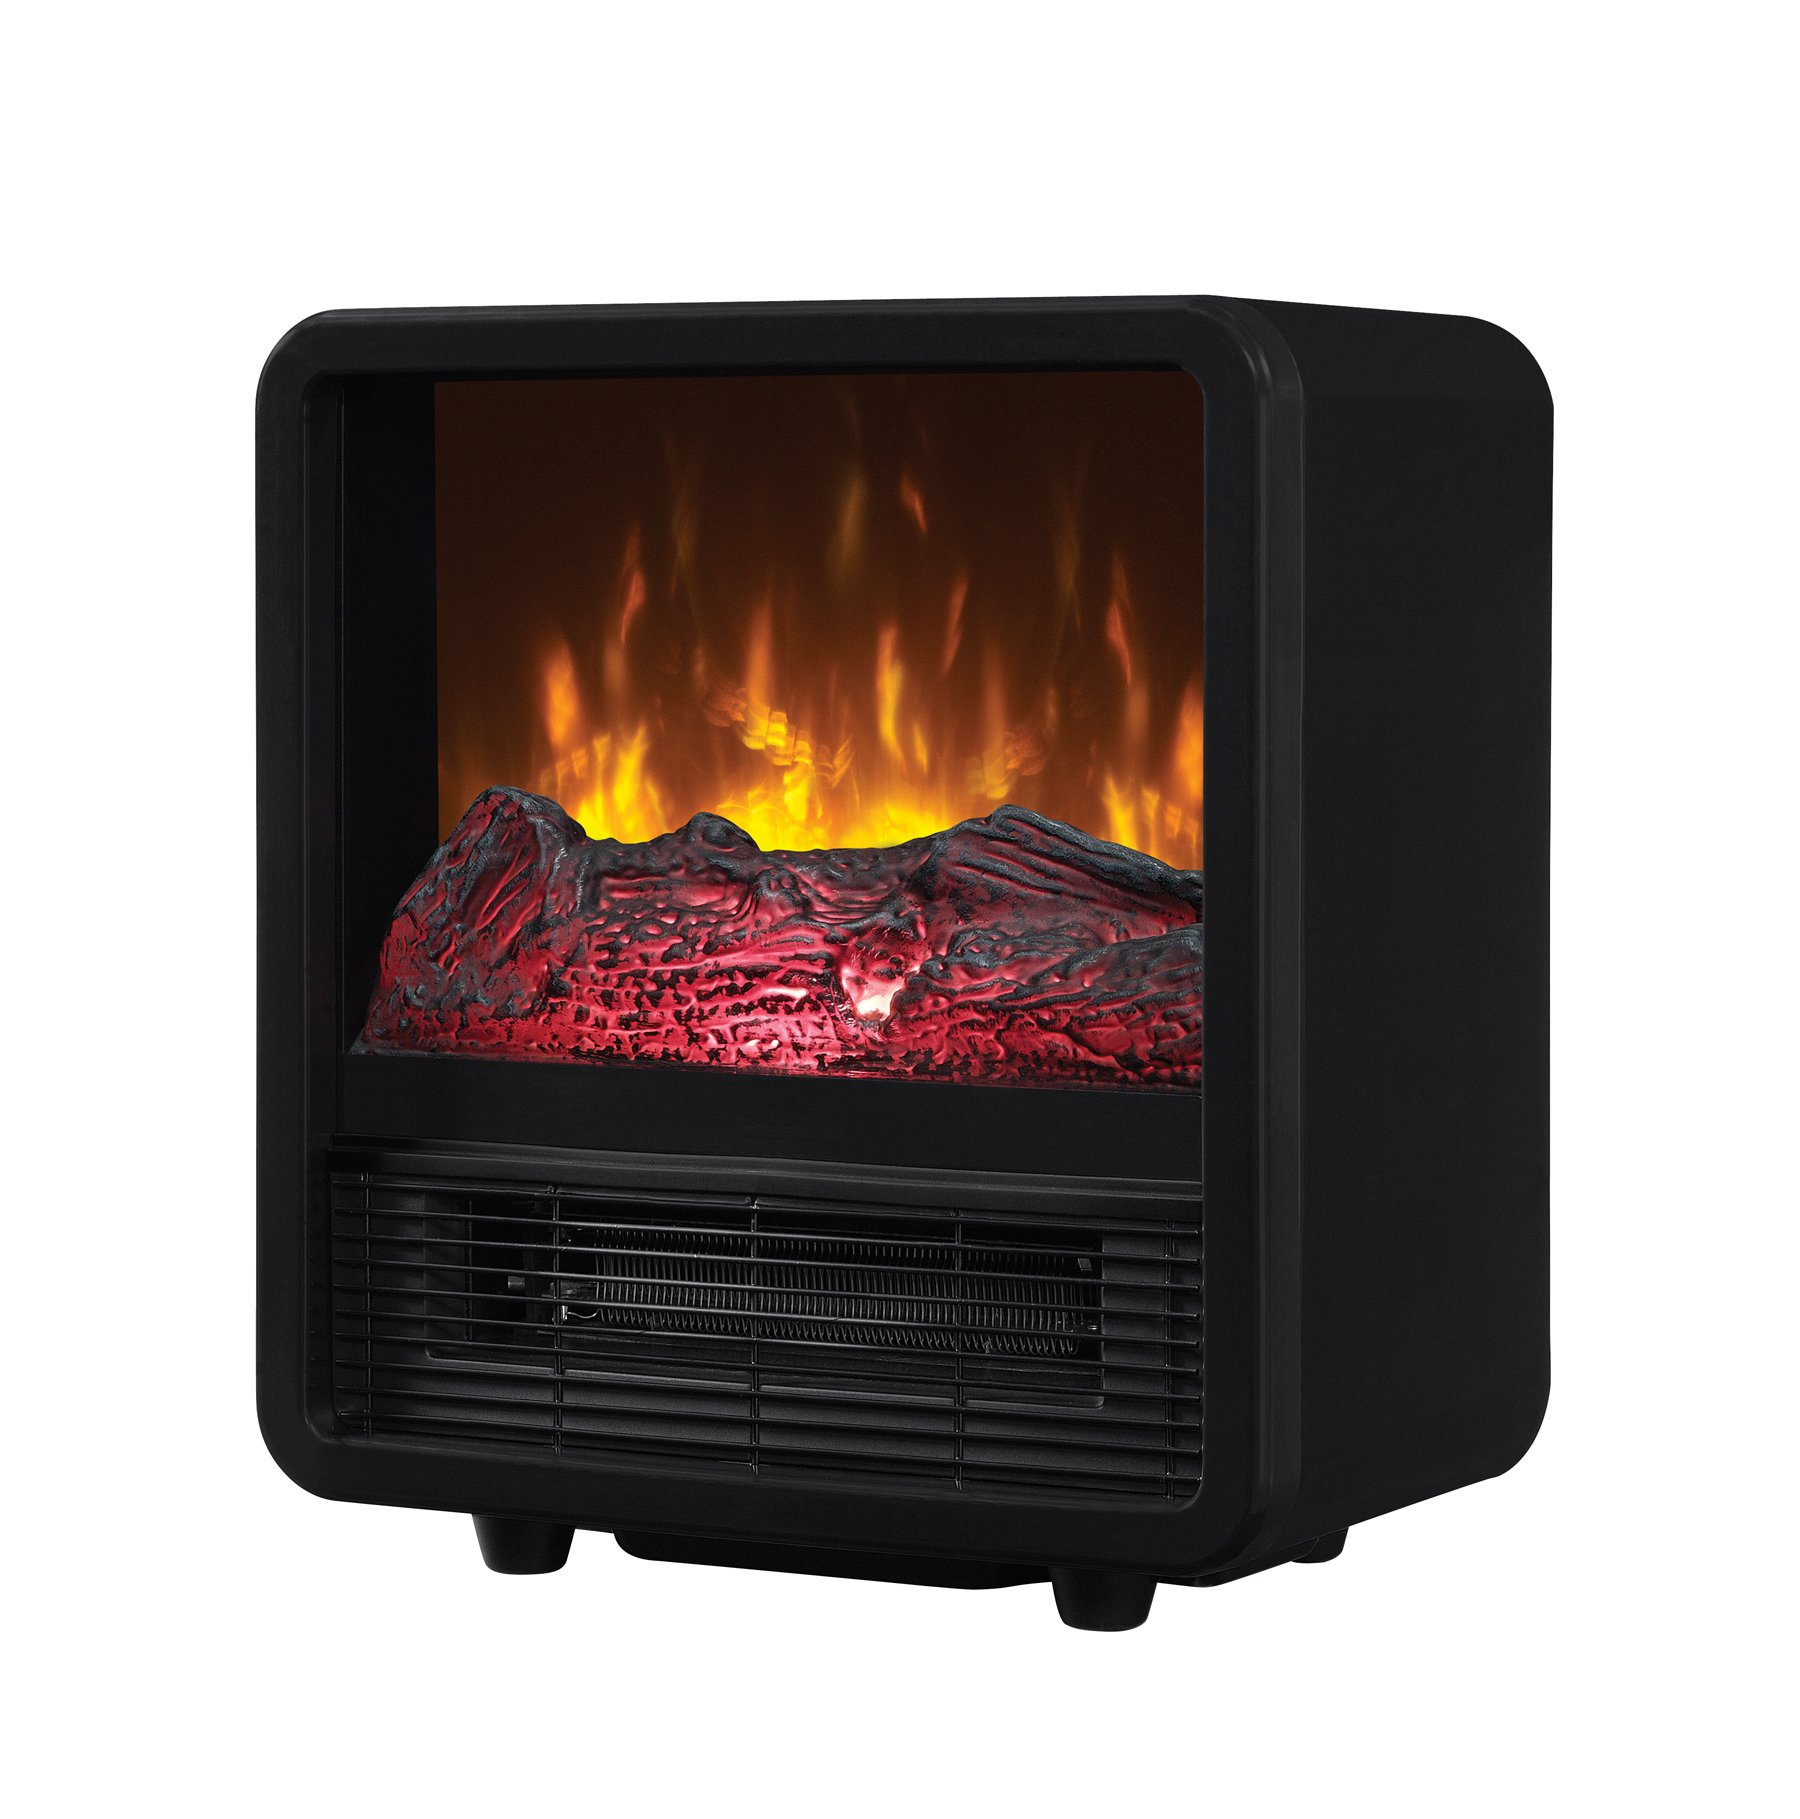 Twin-Star Home CFS-300-BLK Portable Electric Personal Space Heater Cube with Electric Fireplace, Black